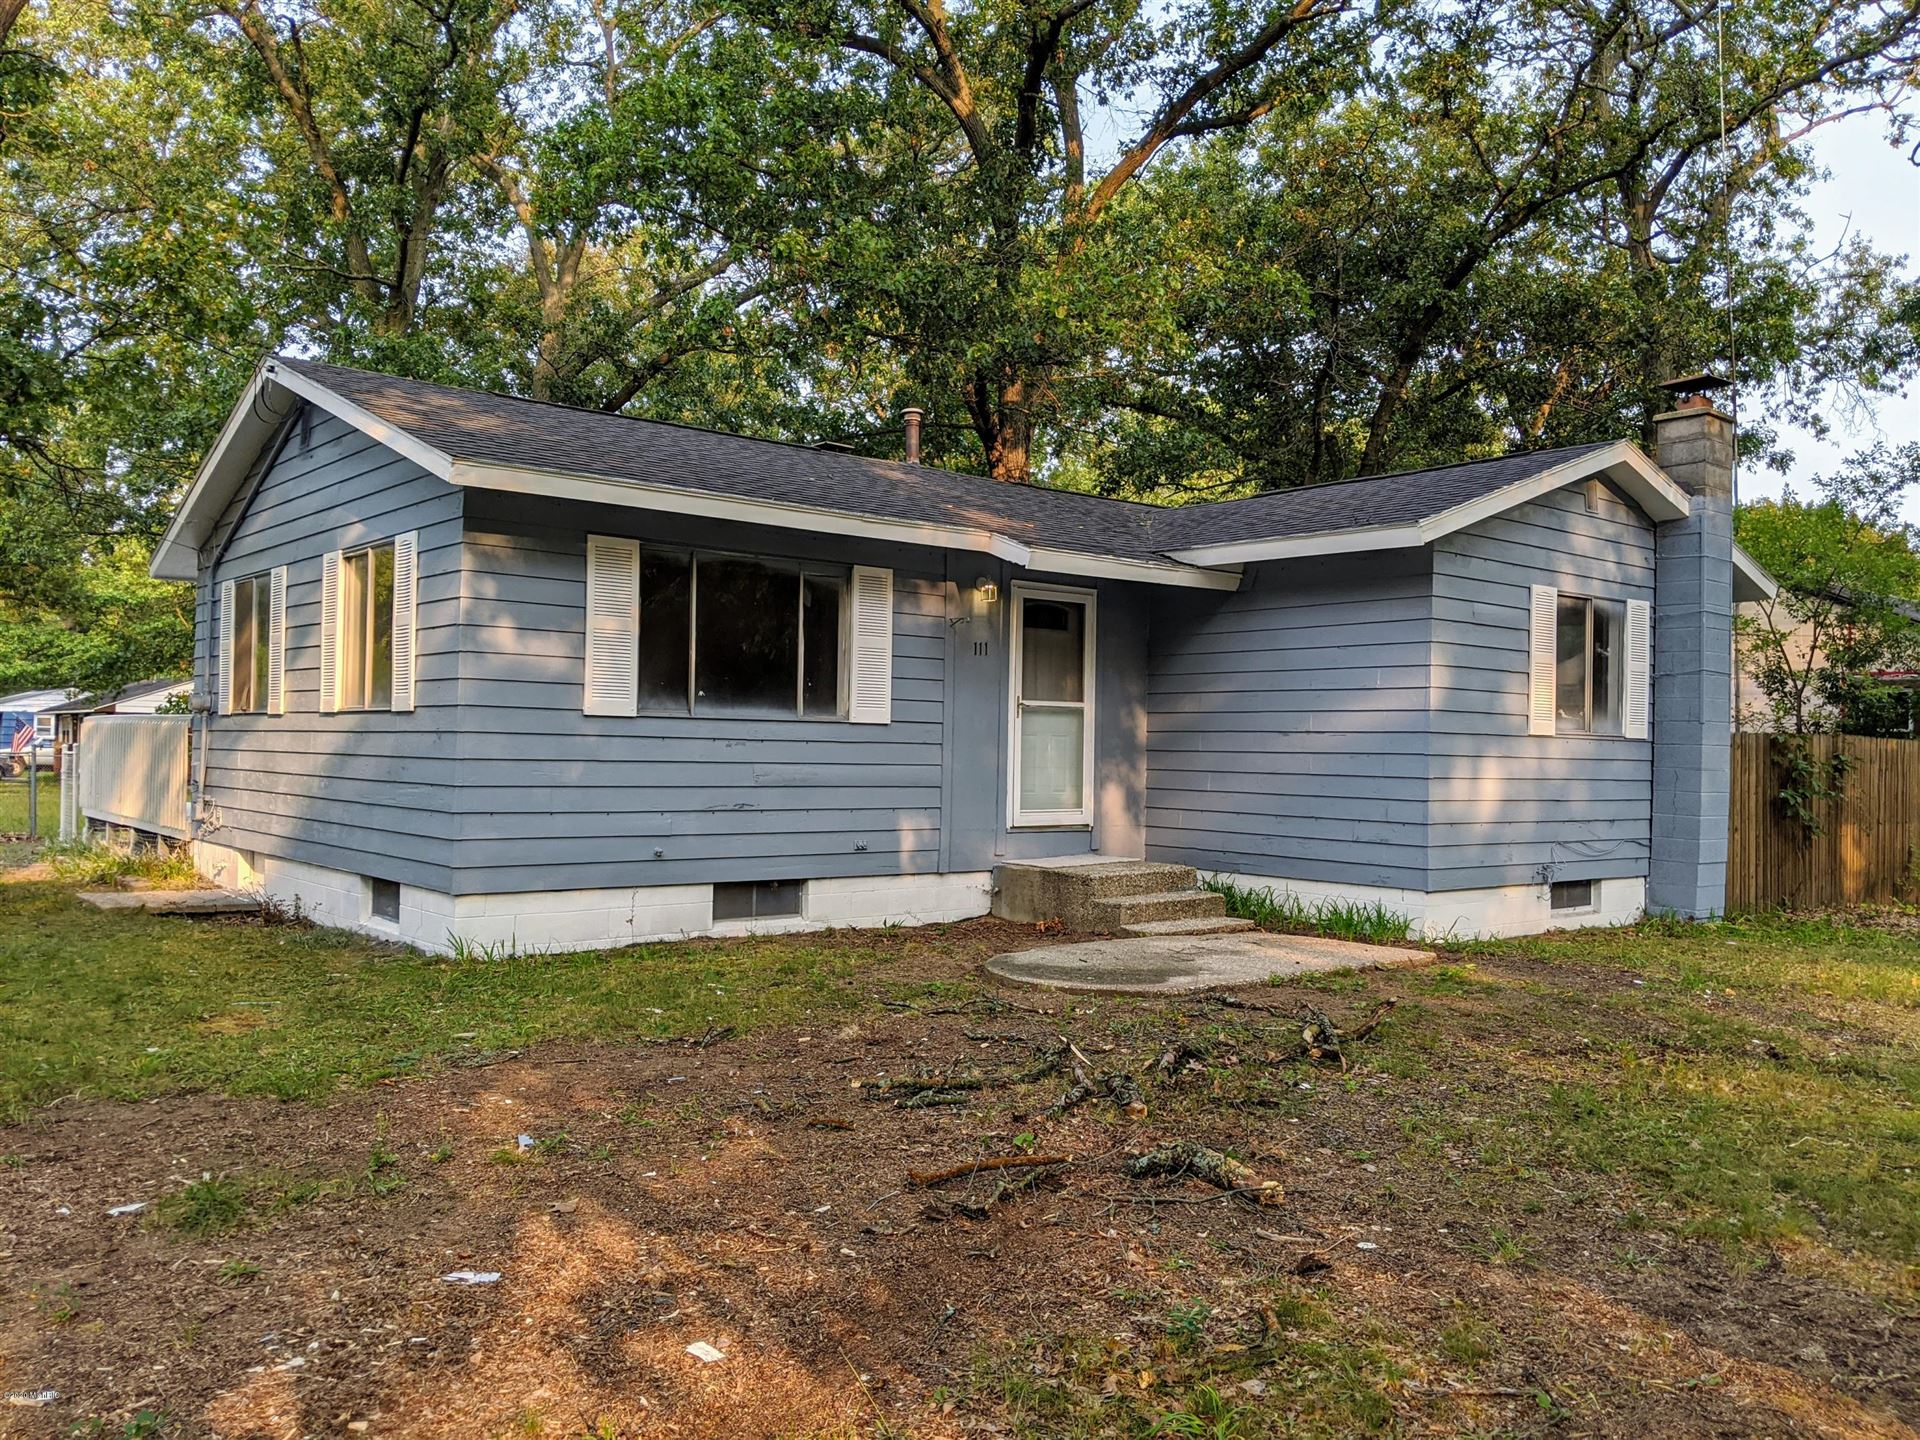 Photo of 111 N Dangl Road, Muskegon, MI 49442 (MLS # 20038840)